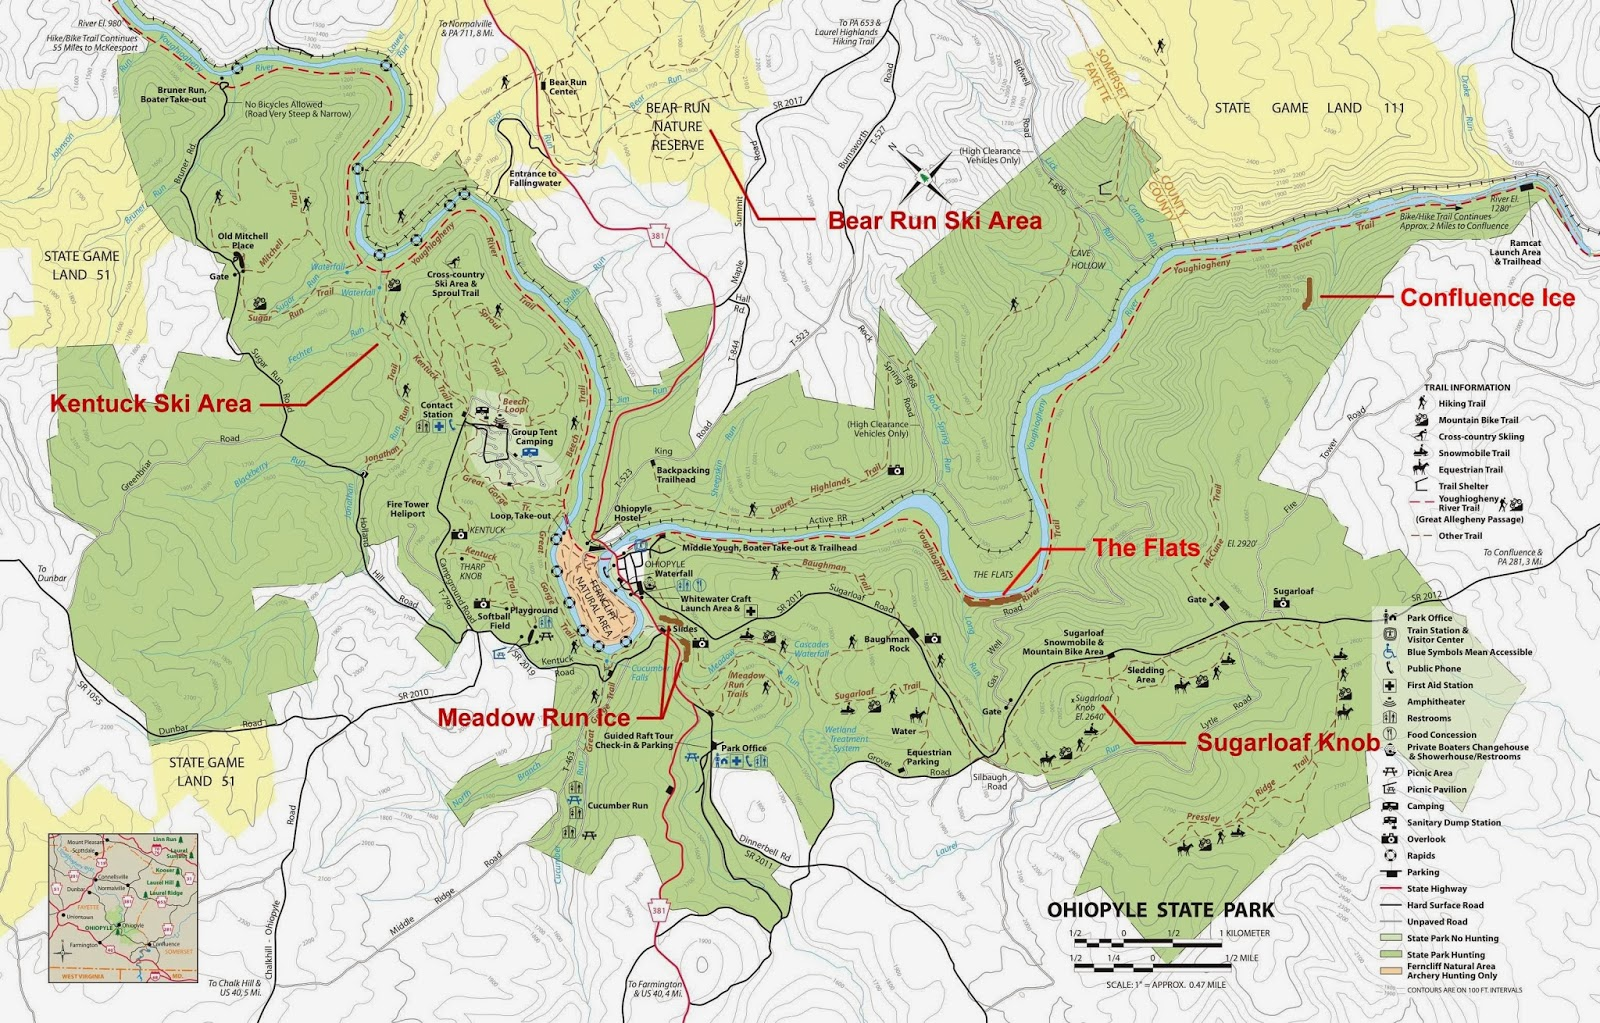 snowshoe trail map with Victoria Flats Ice Climbing Part 3 on 15 Of The Most Popular Ski Resorts In North America Sold In Massive Deal likewise Trailmap additionally Lifts Trails Status besides Maps additionally Maps.